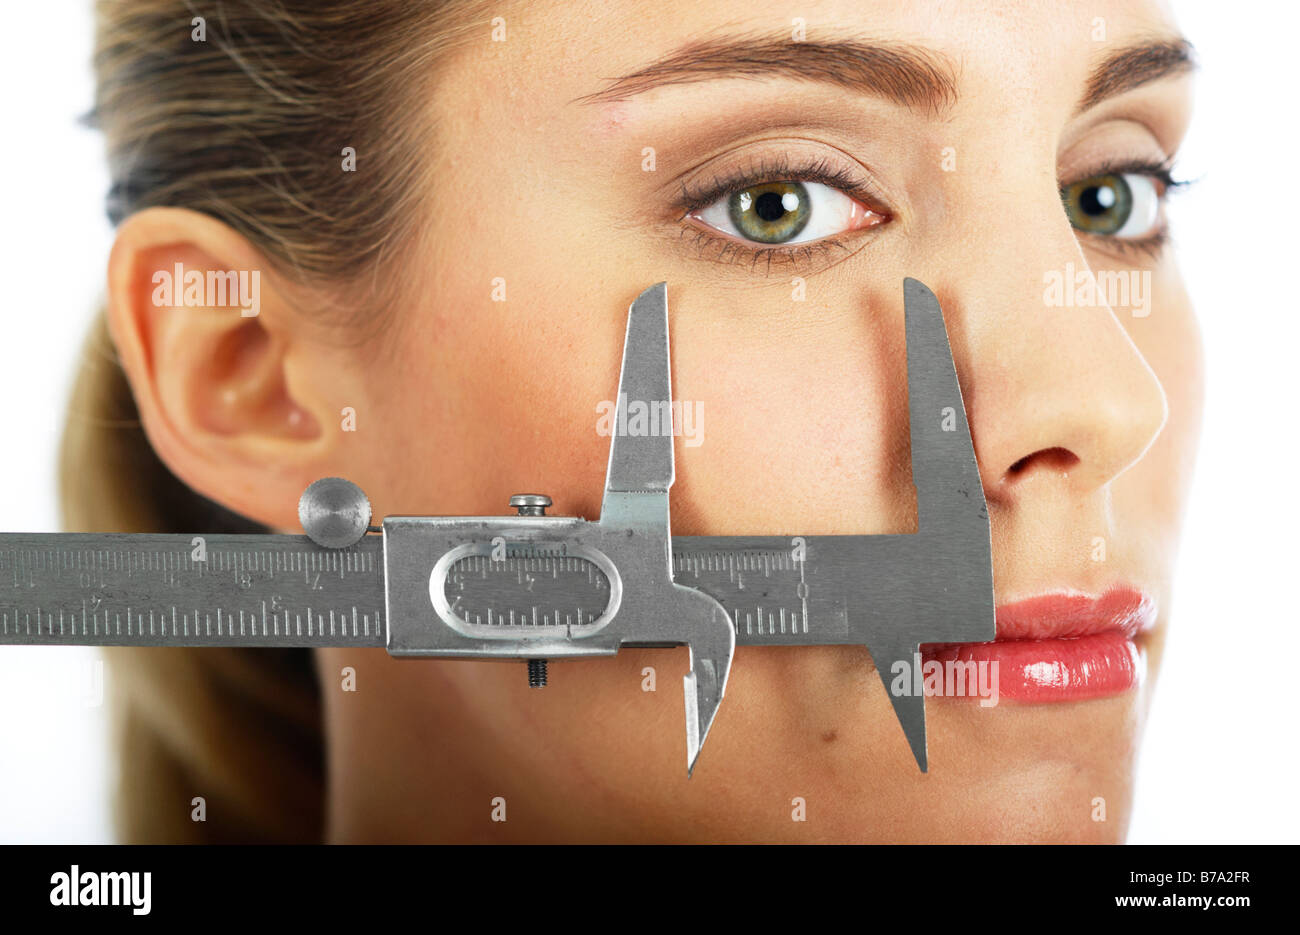 Width of a young woman's eye being measured with a caliper rule - Stock Image